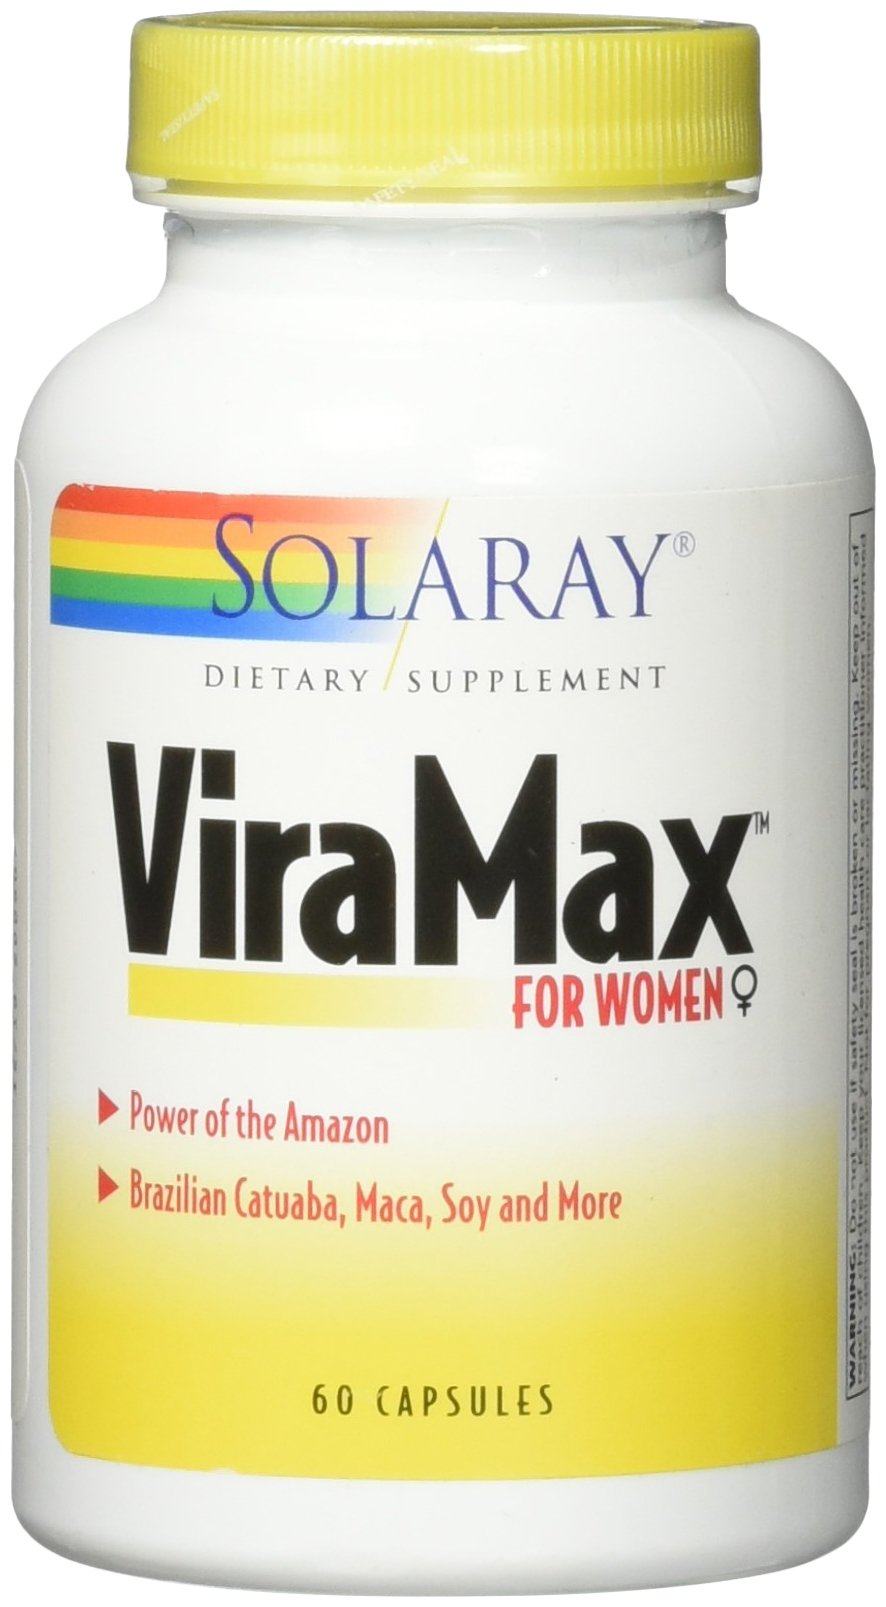 Solaray Viramax VCapsules for Women, 60 Count